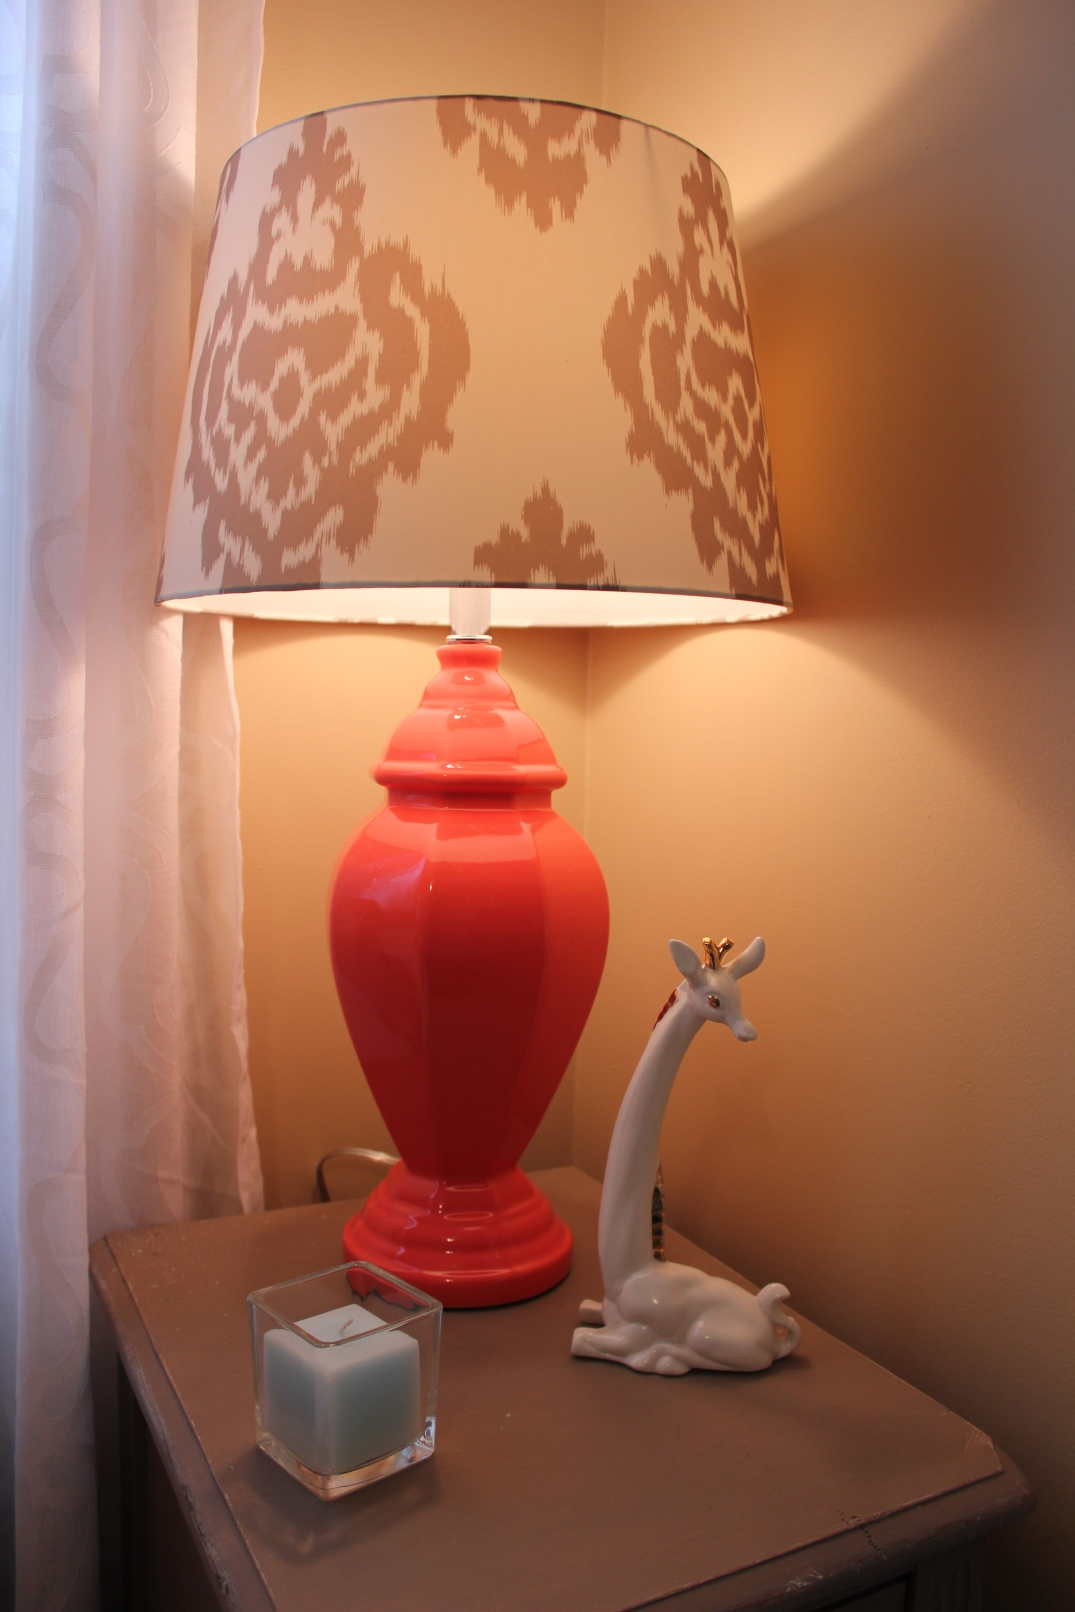 I got the tangerine lamp bases and Ikat shades from Target, mix and match. The giraffe was a vintage find and I love his mid century modern look. He is porcelain so he will be put away when baby starts walking.